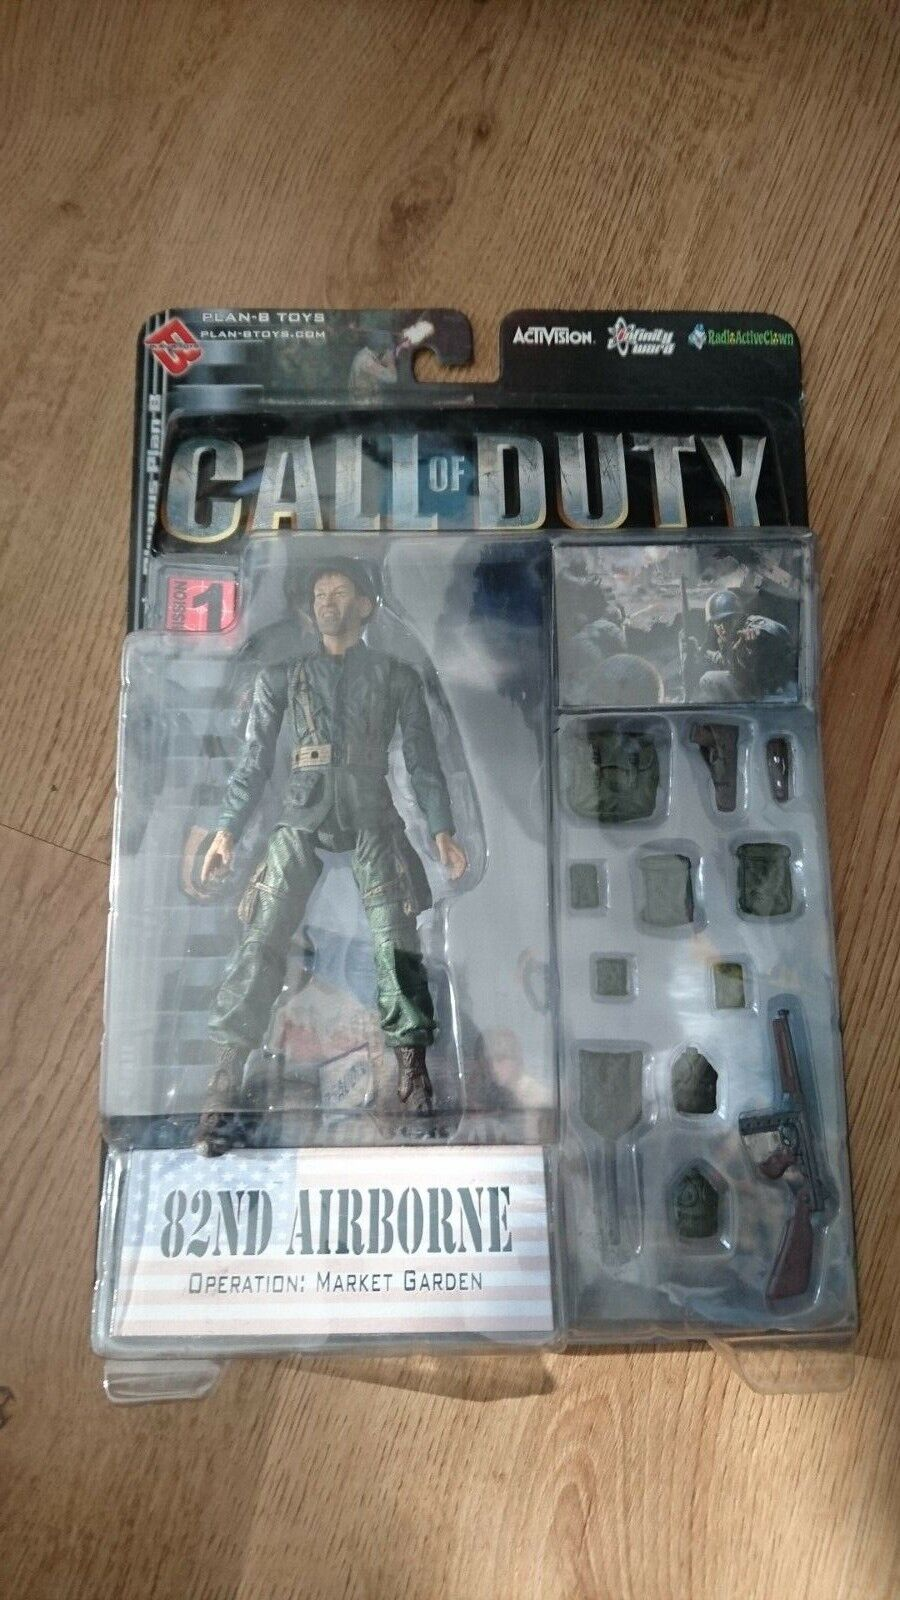 CALL OF DUTY WWII AMERICAN 82nd Airborne ACTION FIGURE PLAN-B TOYS - Brand New